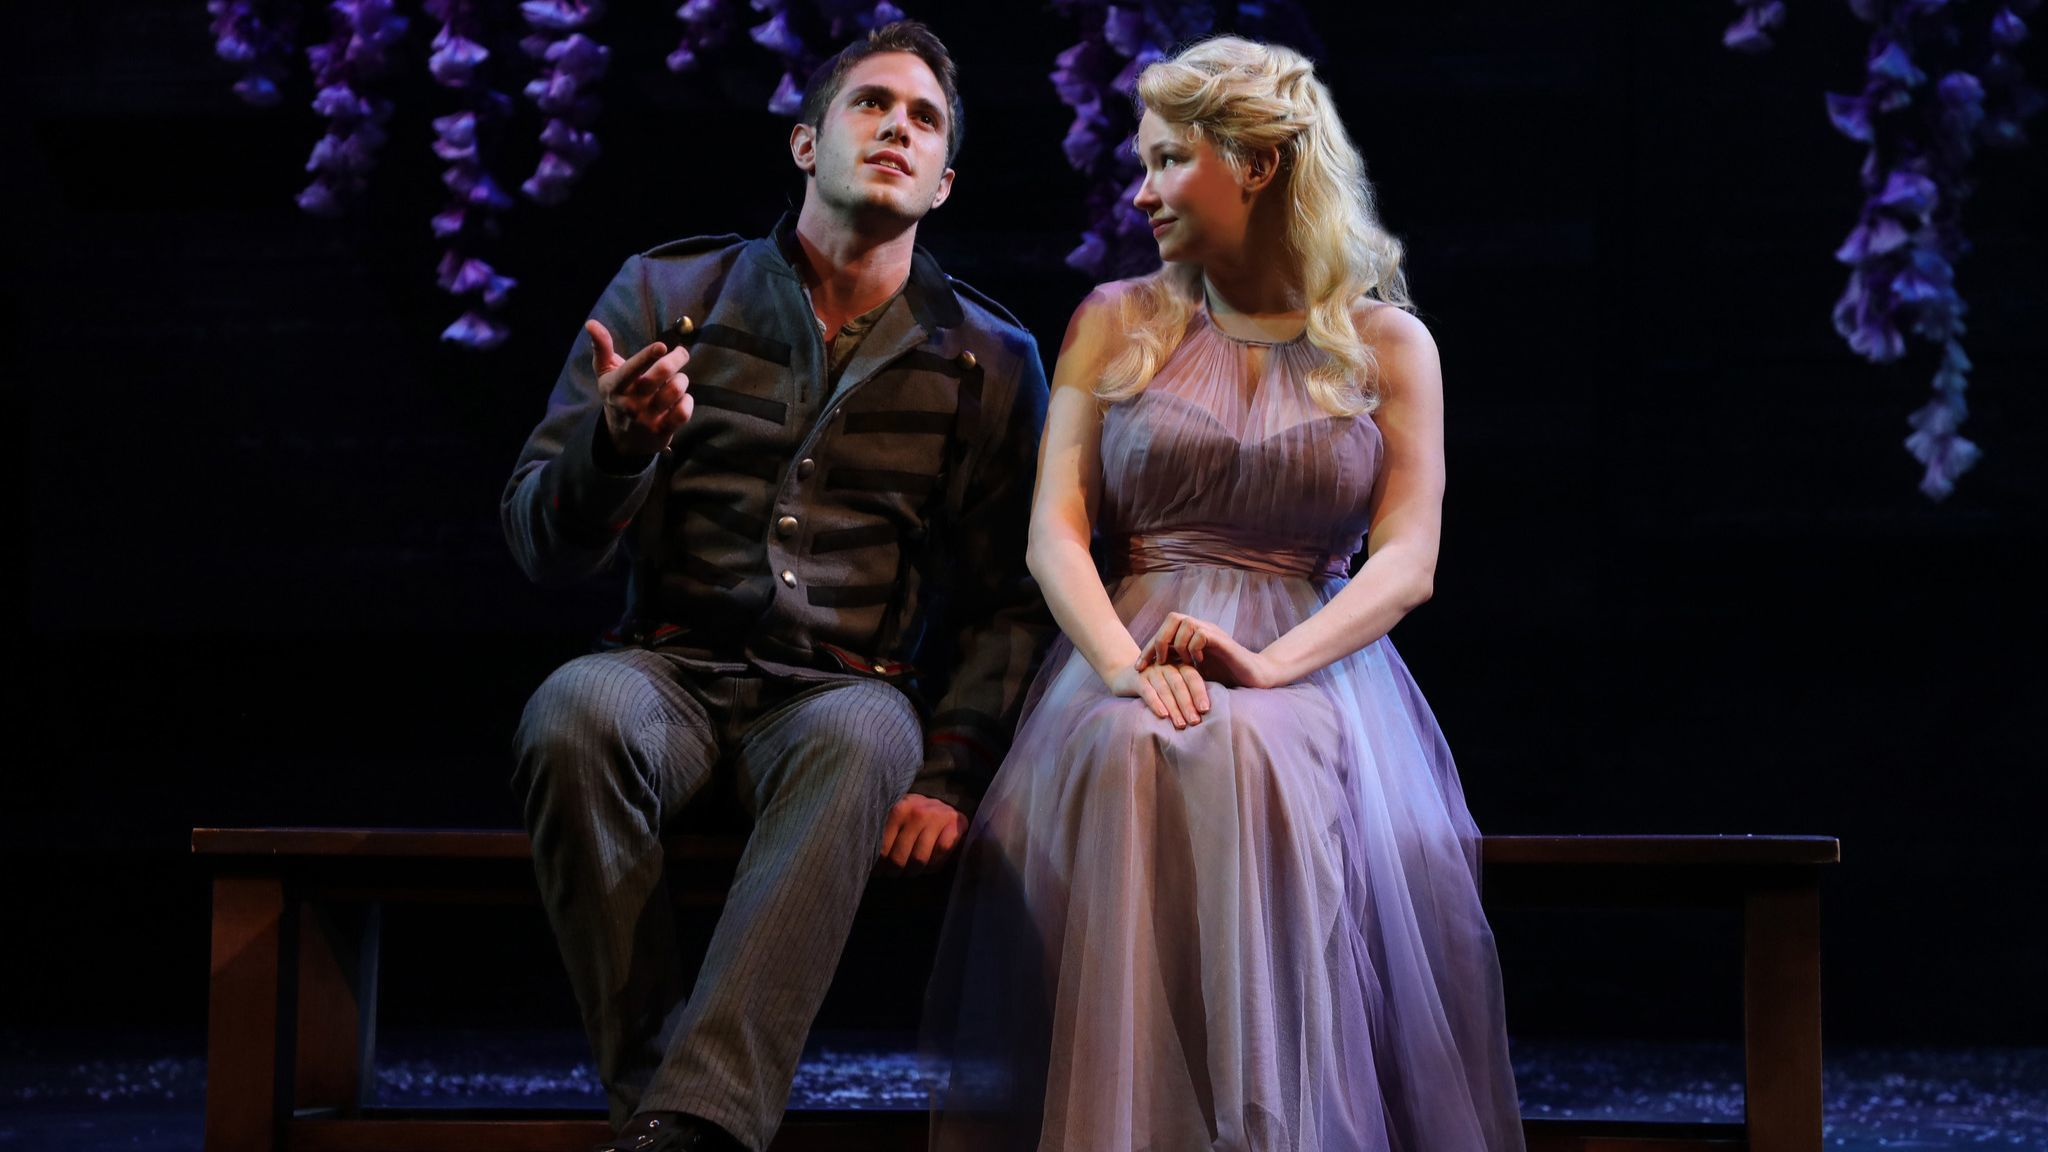 Actor's Unexpected Departure Forces Goodspeed To End 'Cyrano' Early | Hartford Courant